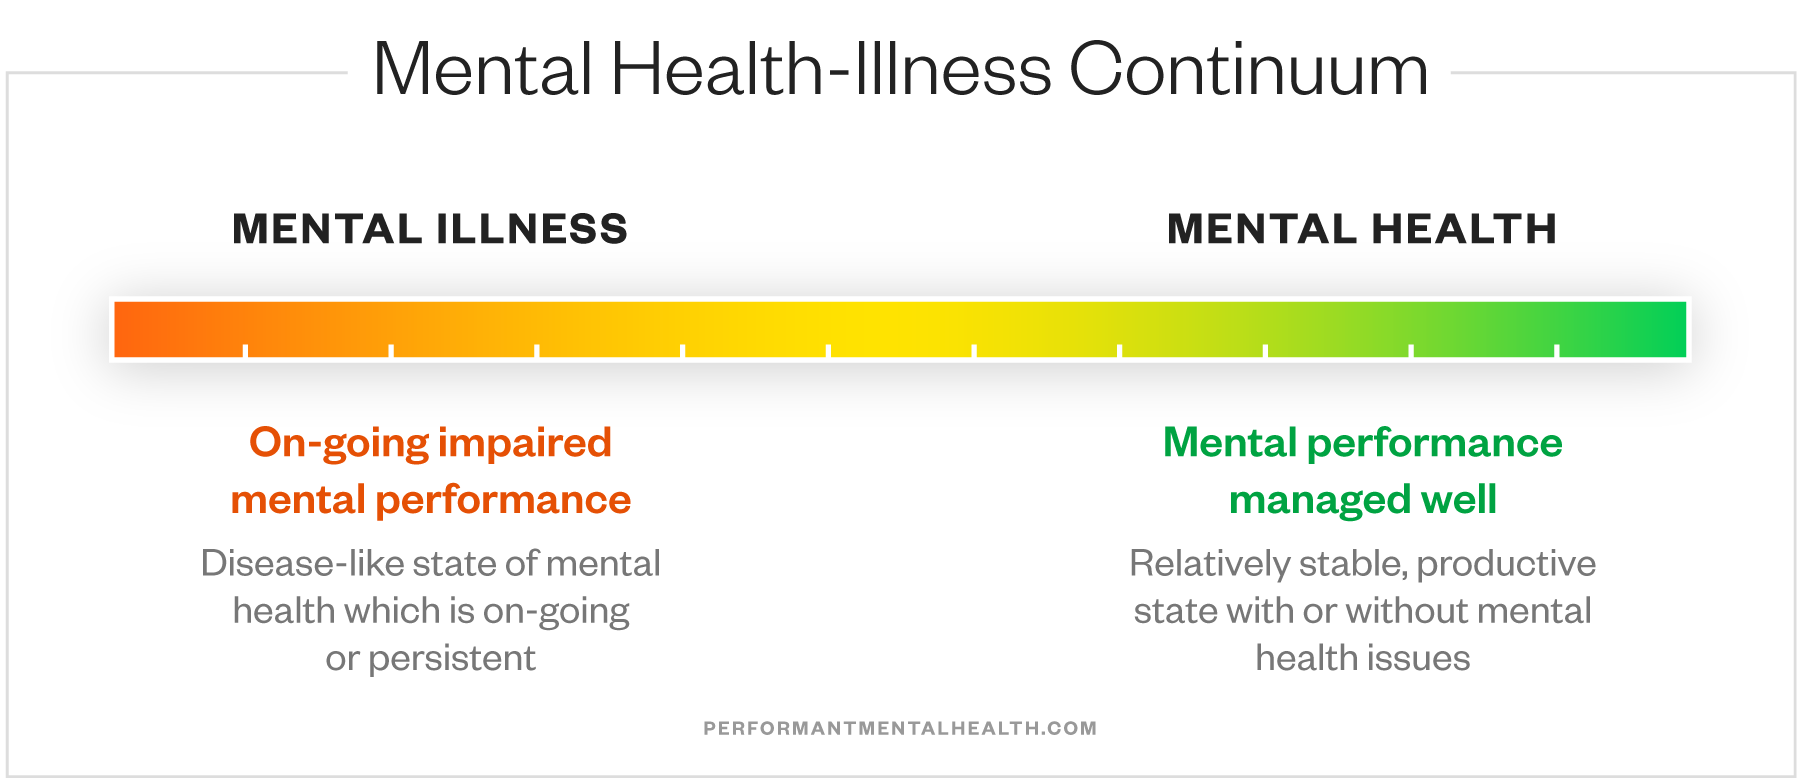 Mental Health-Illness Continuum showing maximum mental illness at left and maximum mental health at right